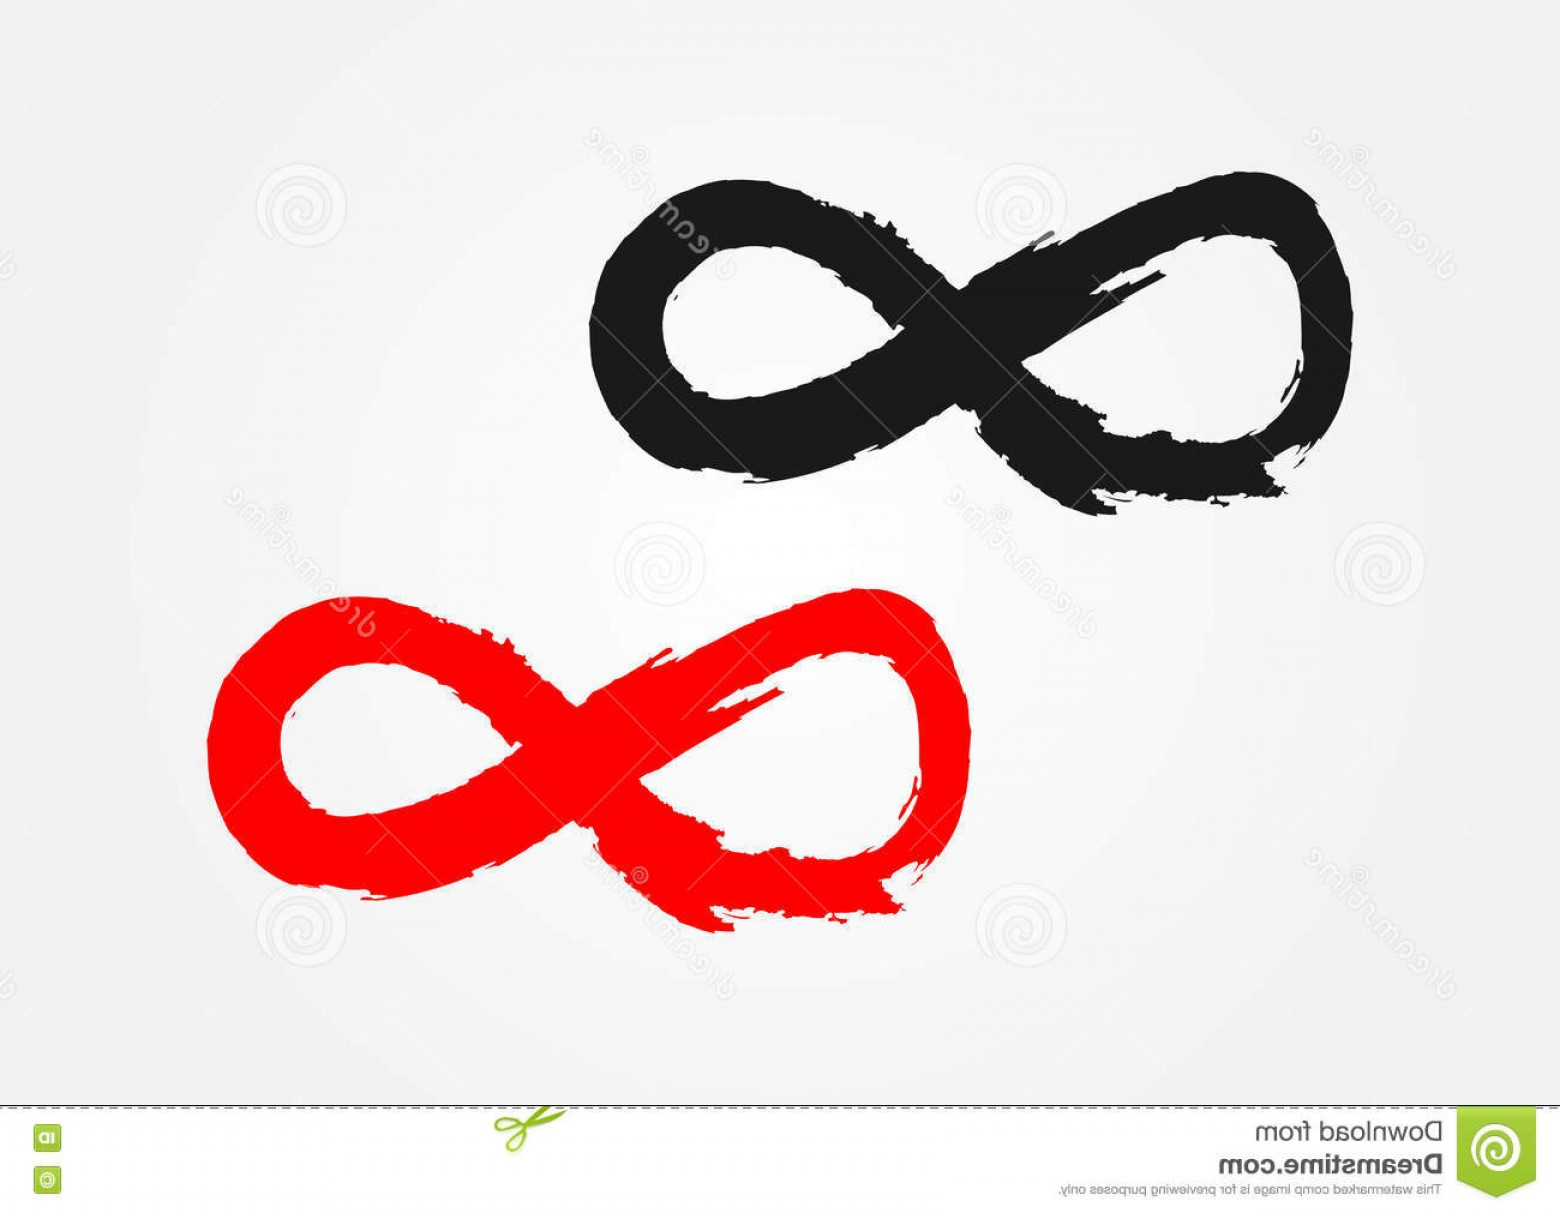 Infinity Grunge Heart Vector: Stock Illustration Infinity Sign Rough Brush Grunge Black Red Isolated Element Image